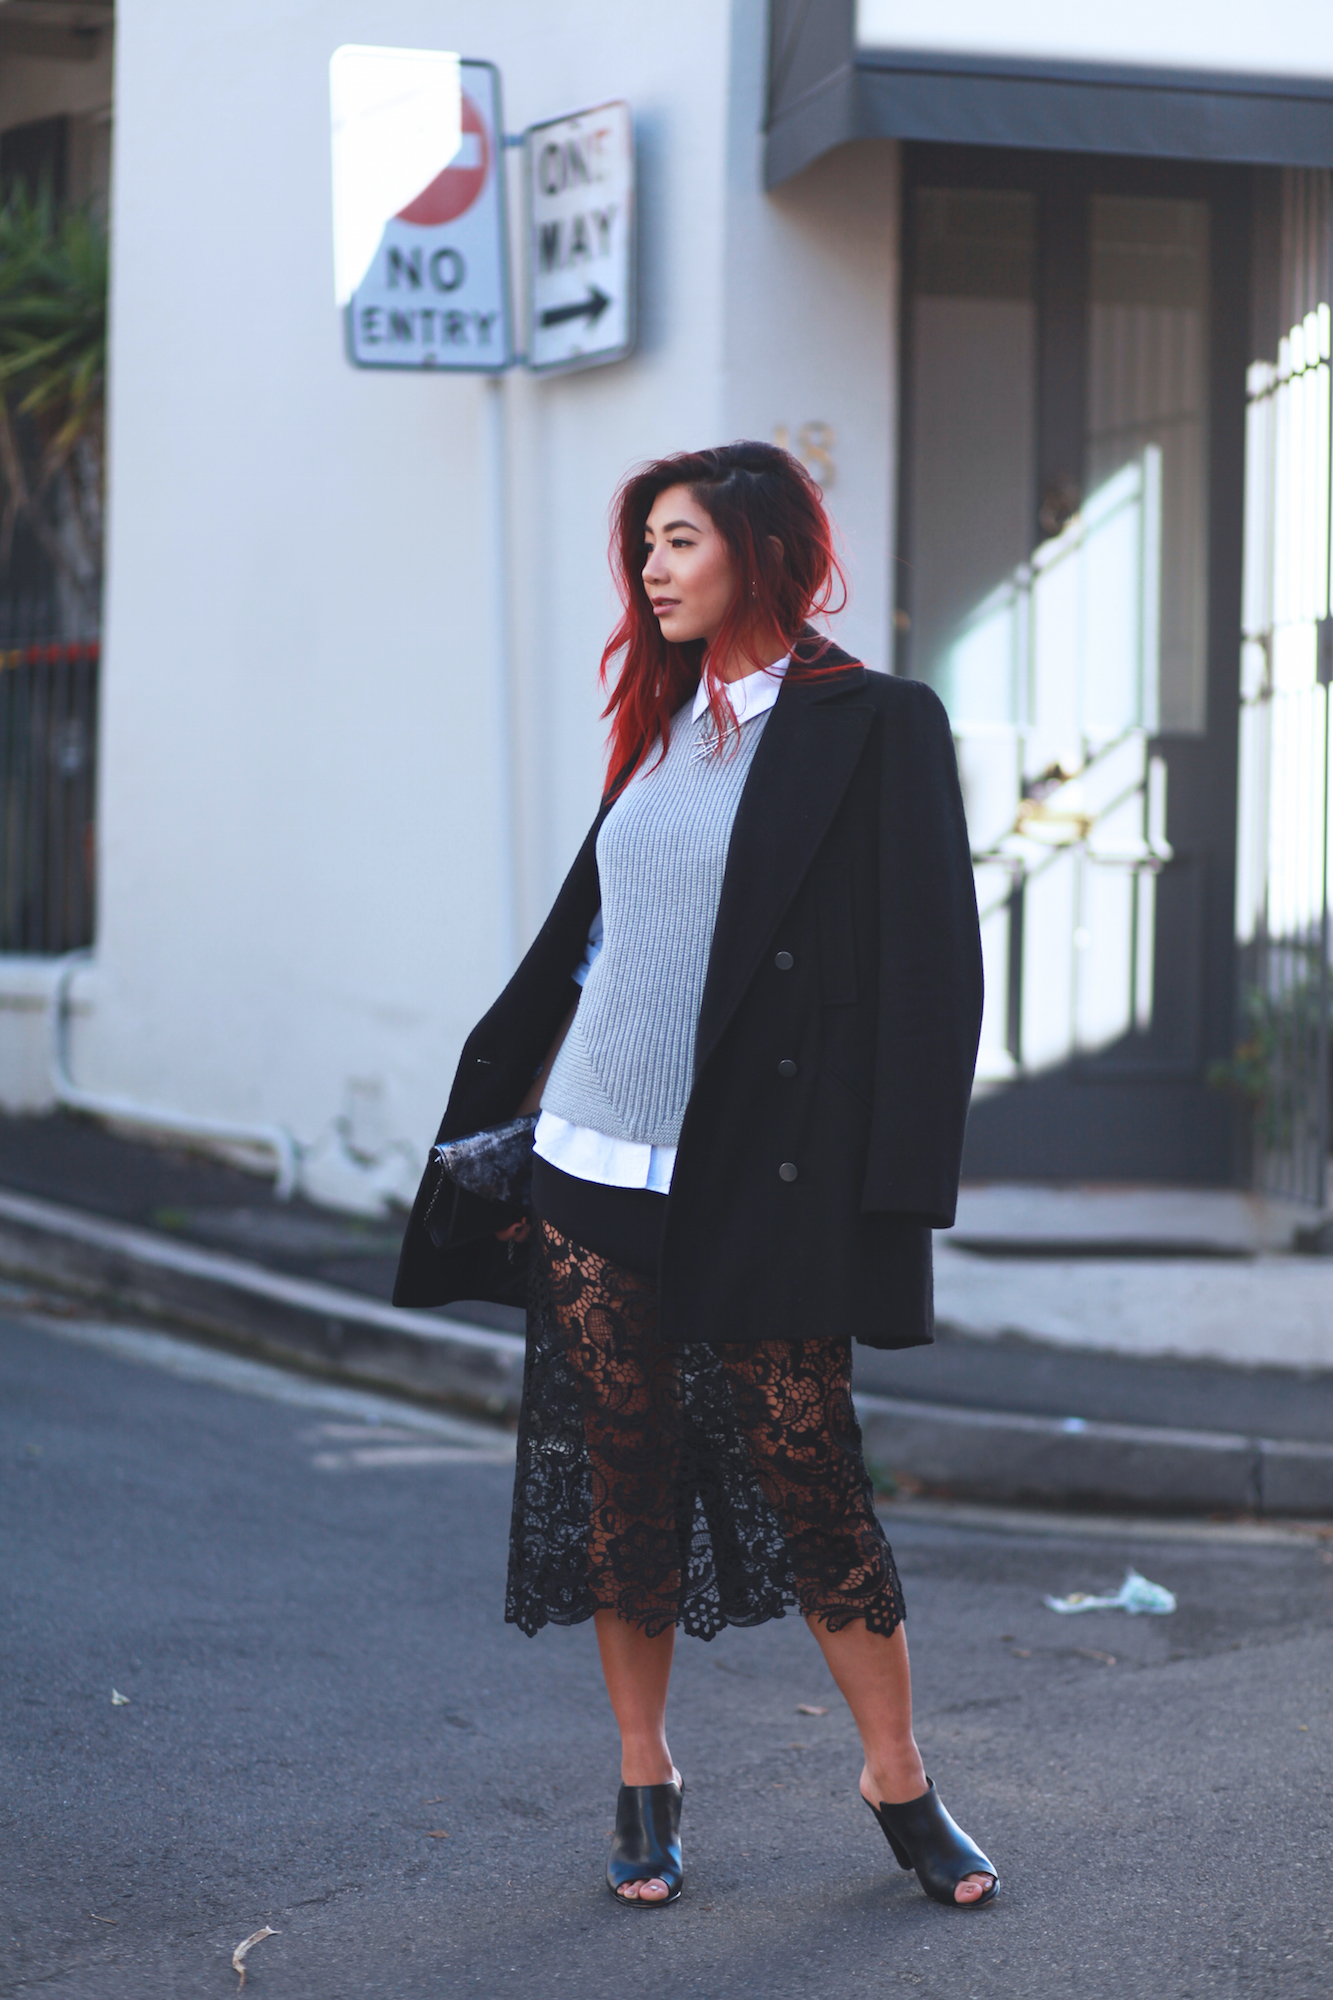 jessie-khoo-fashion-and-sounds-lifewithbird-rubyseesall1